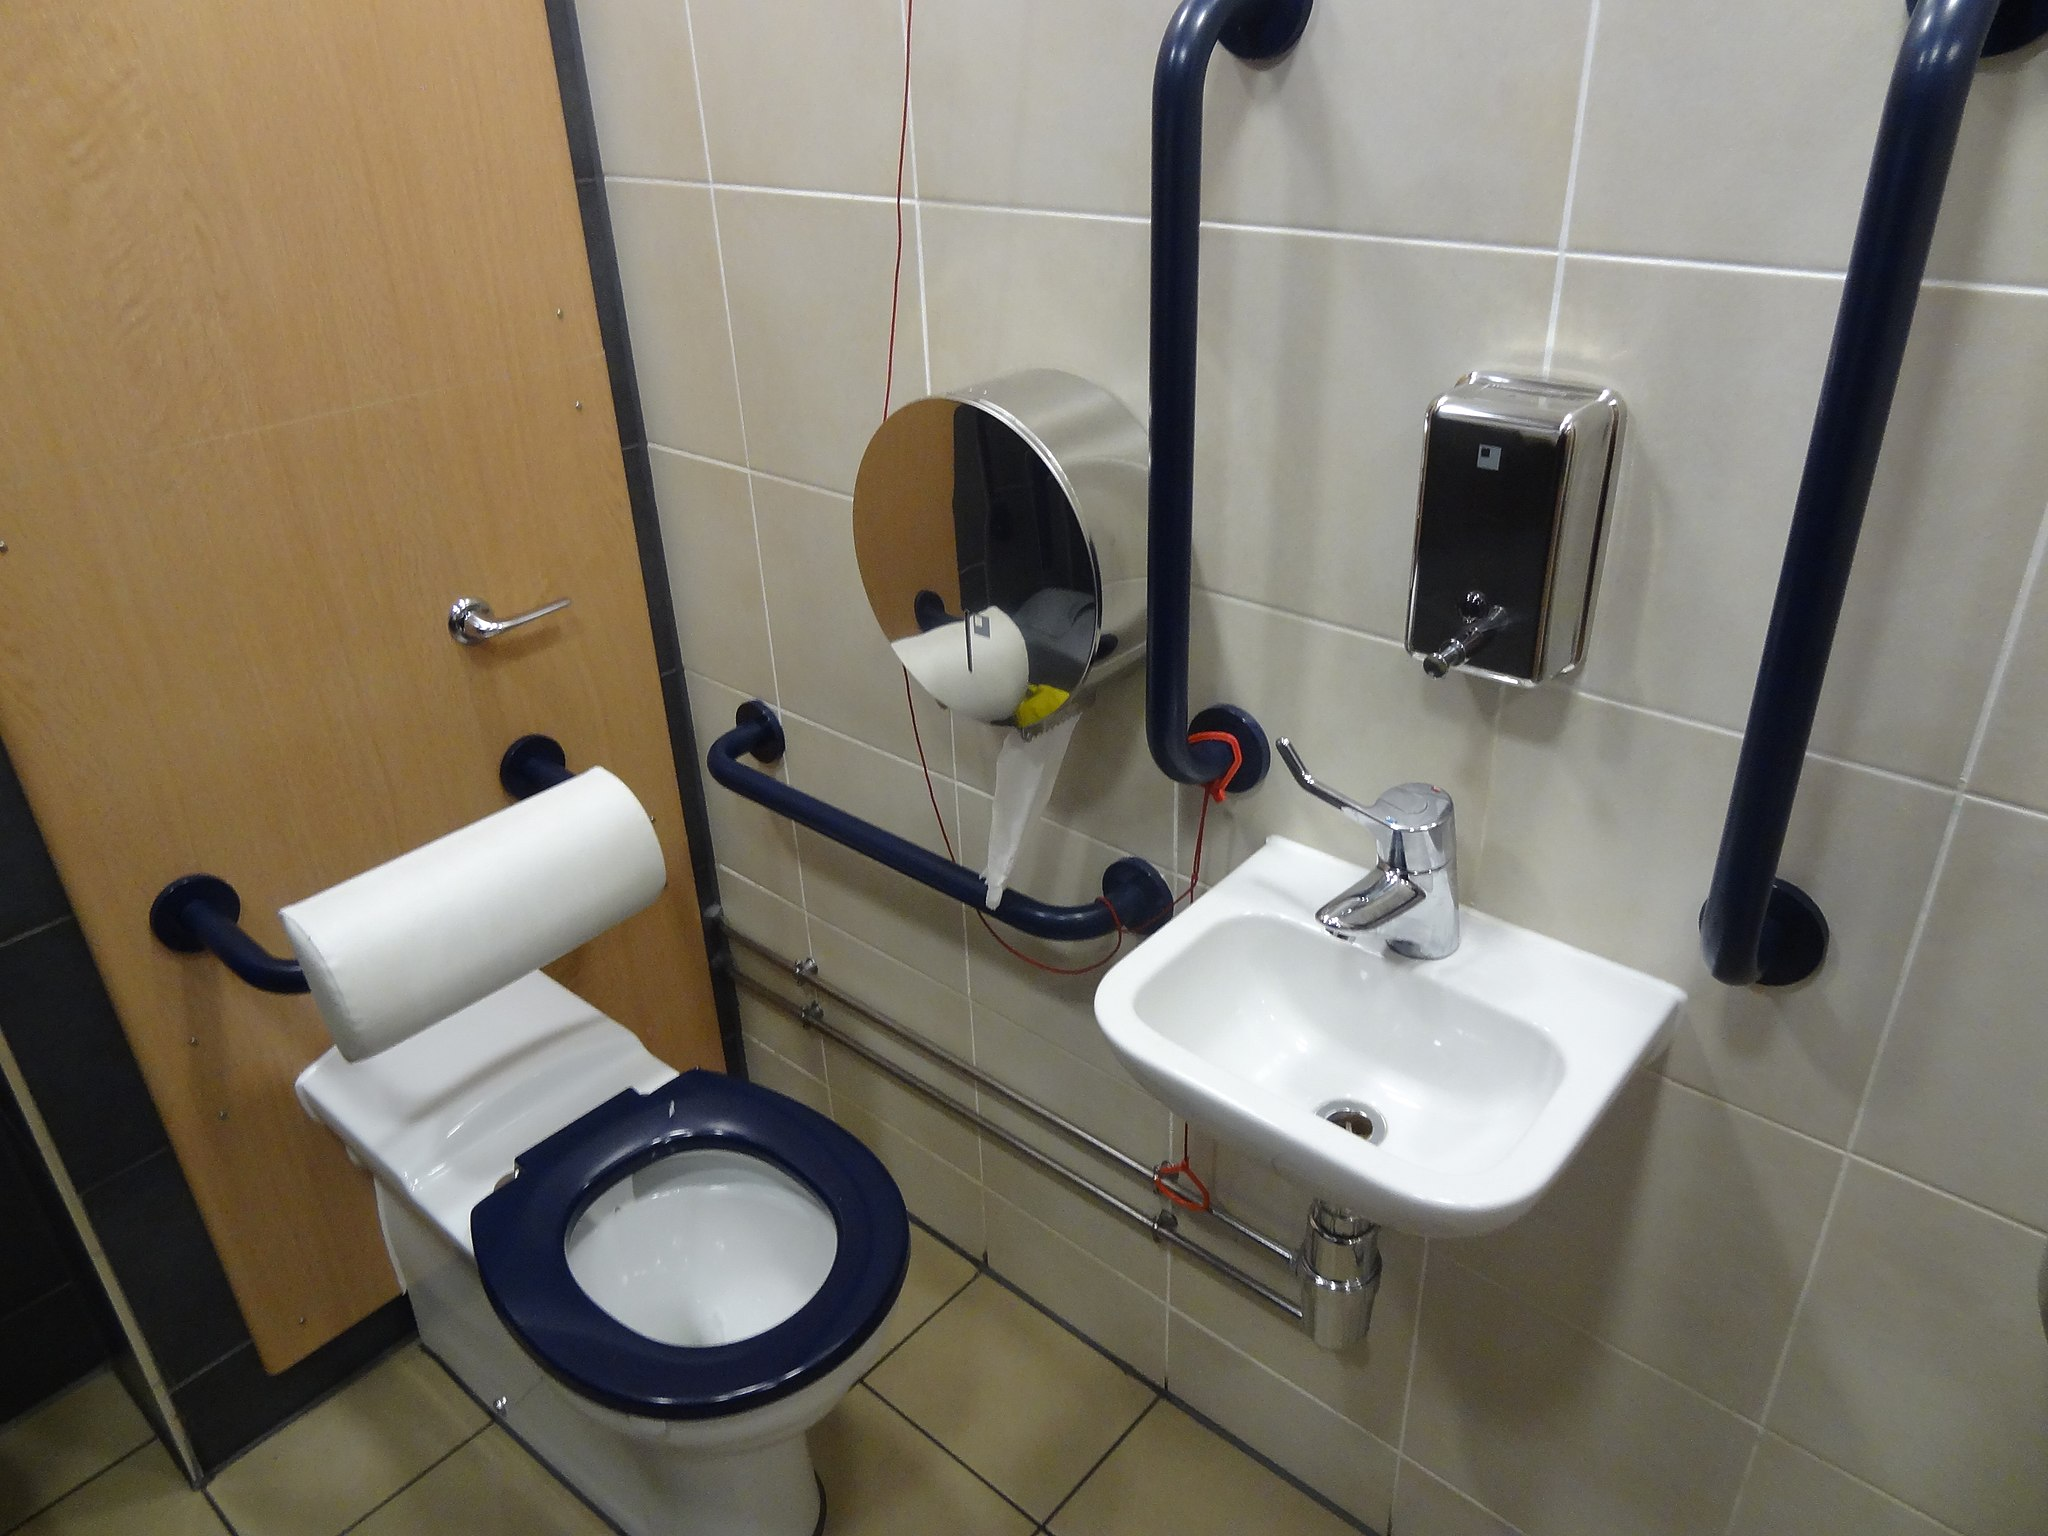 image - Top 5 Tips for Toilet Grab Bars Care & Maintenance